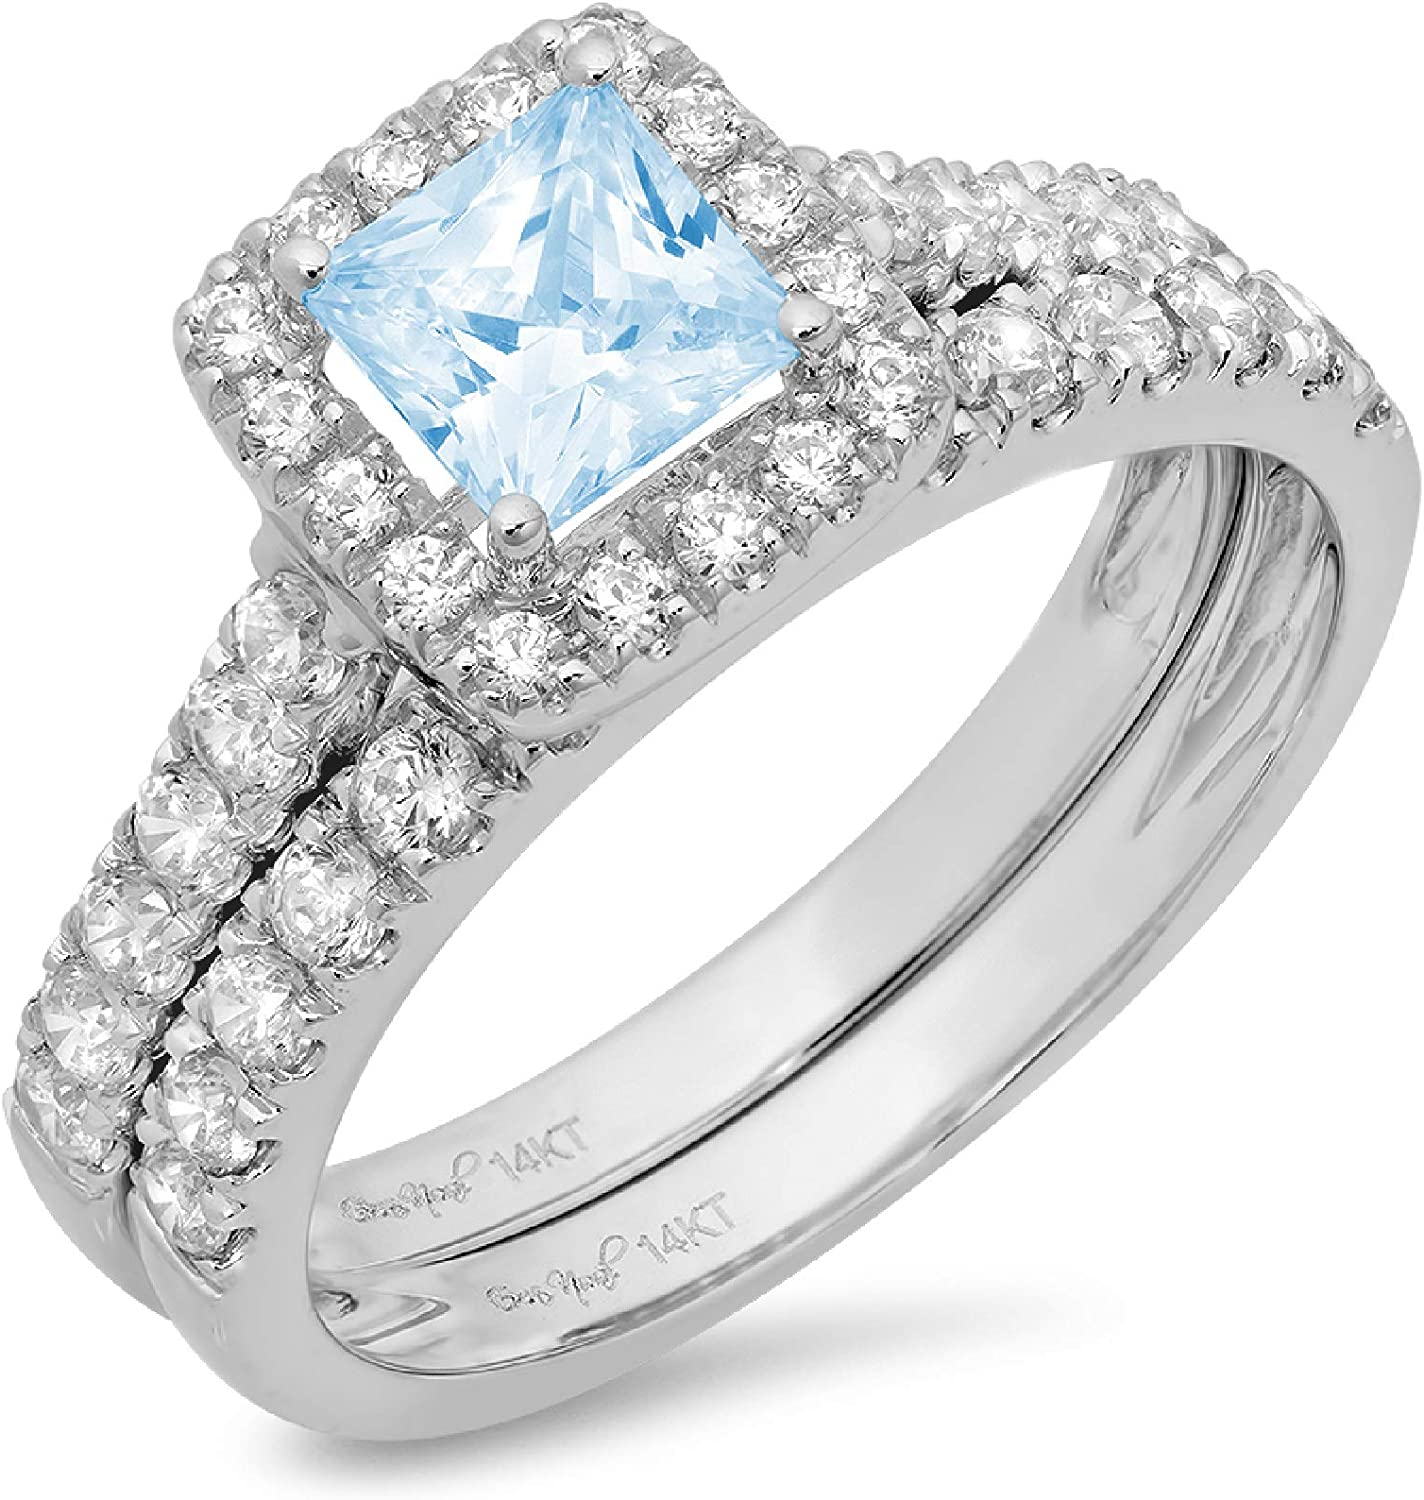 1.57ct Princess Cut Halo Pave Solitaire with Accent Natural Sky Blue Topaz Designer Statement Classic Ring Band Set Real Solid 14k White Gold